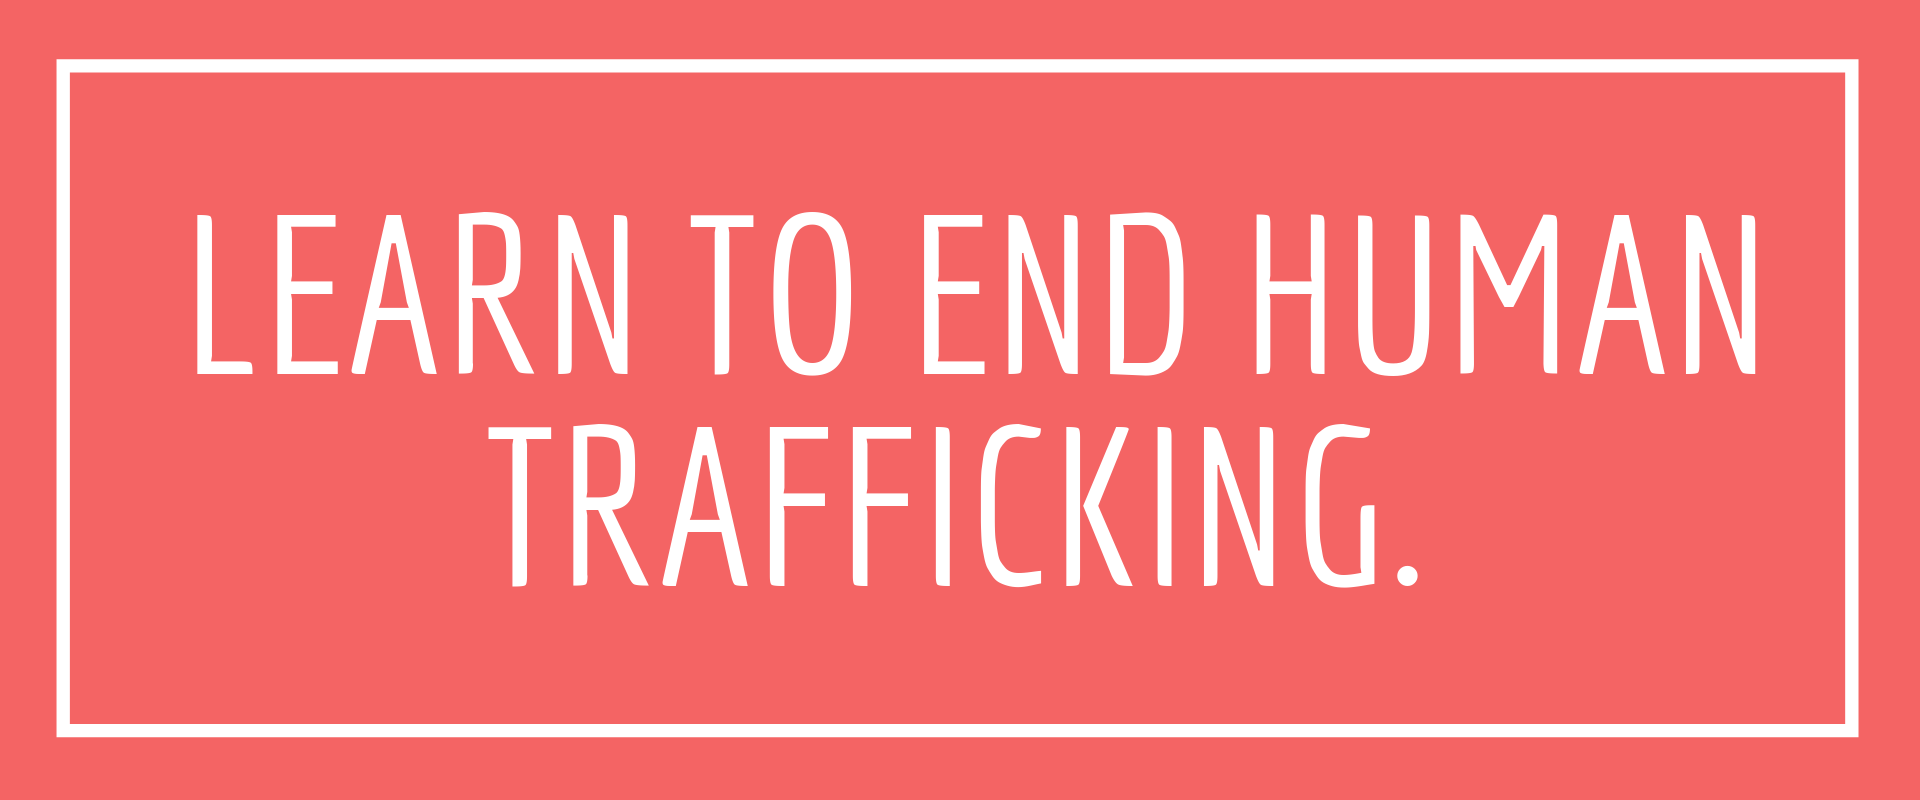 Learn to end human trafficking.